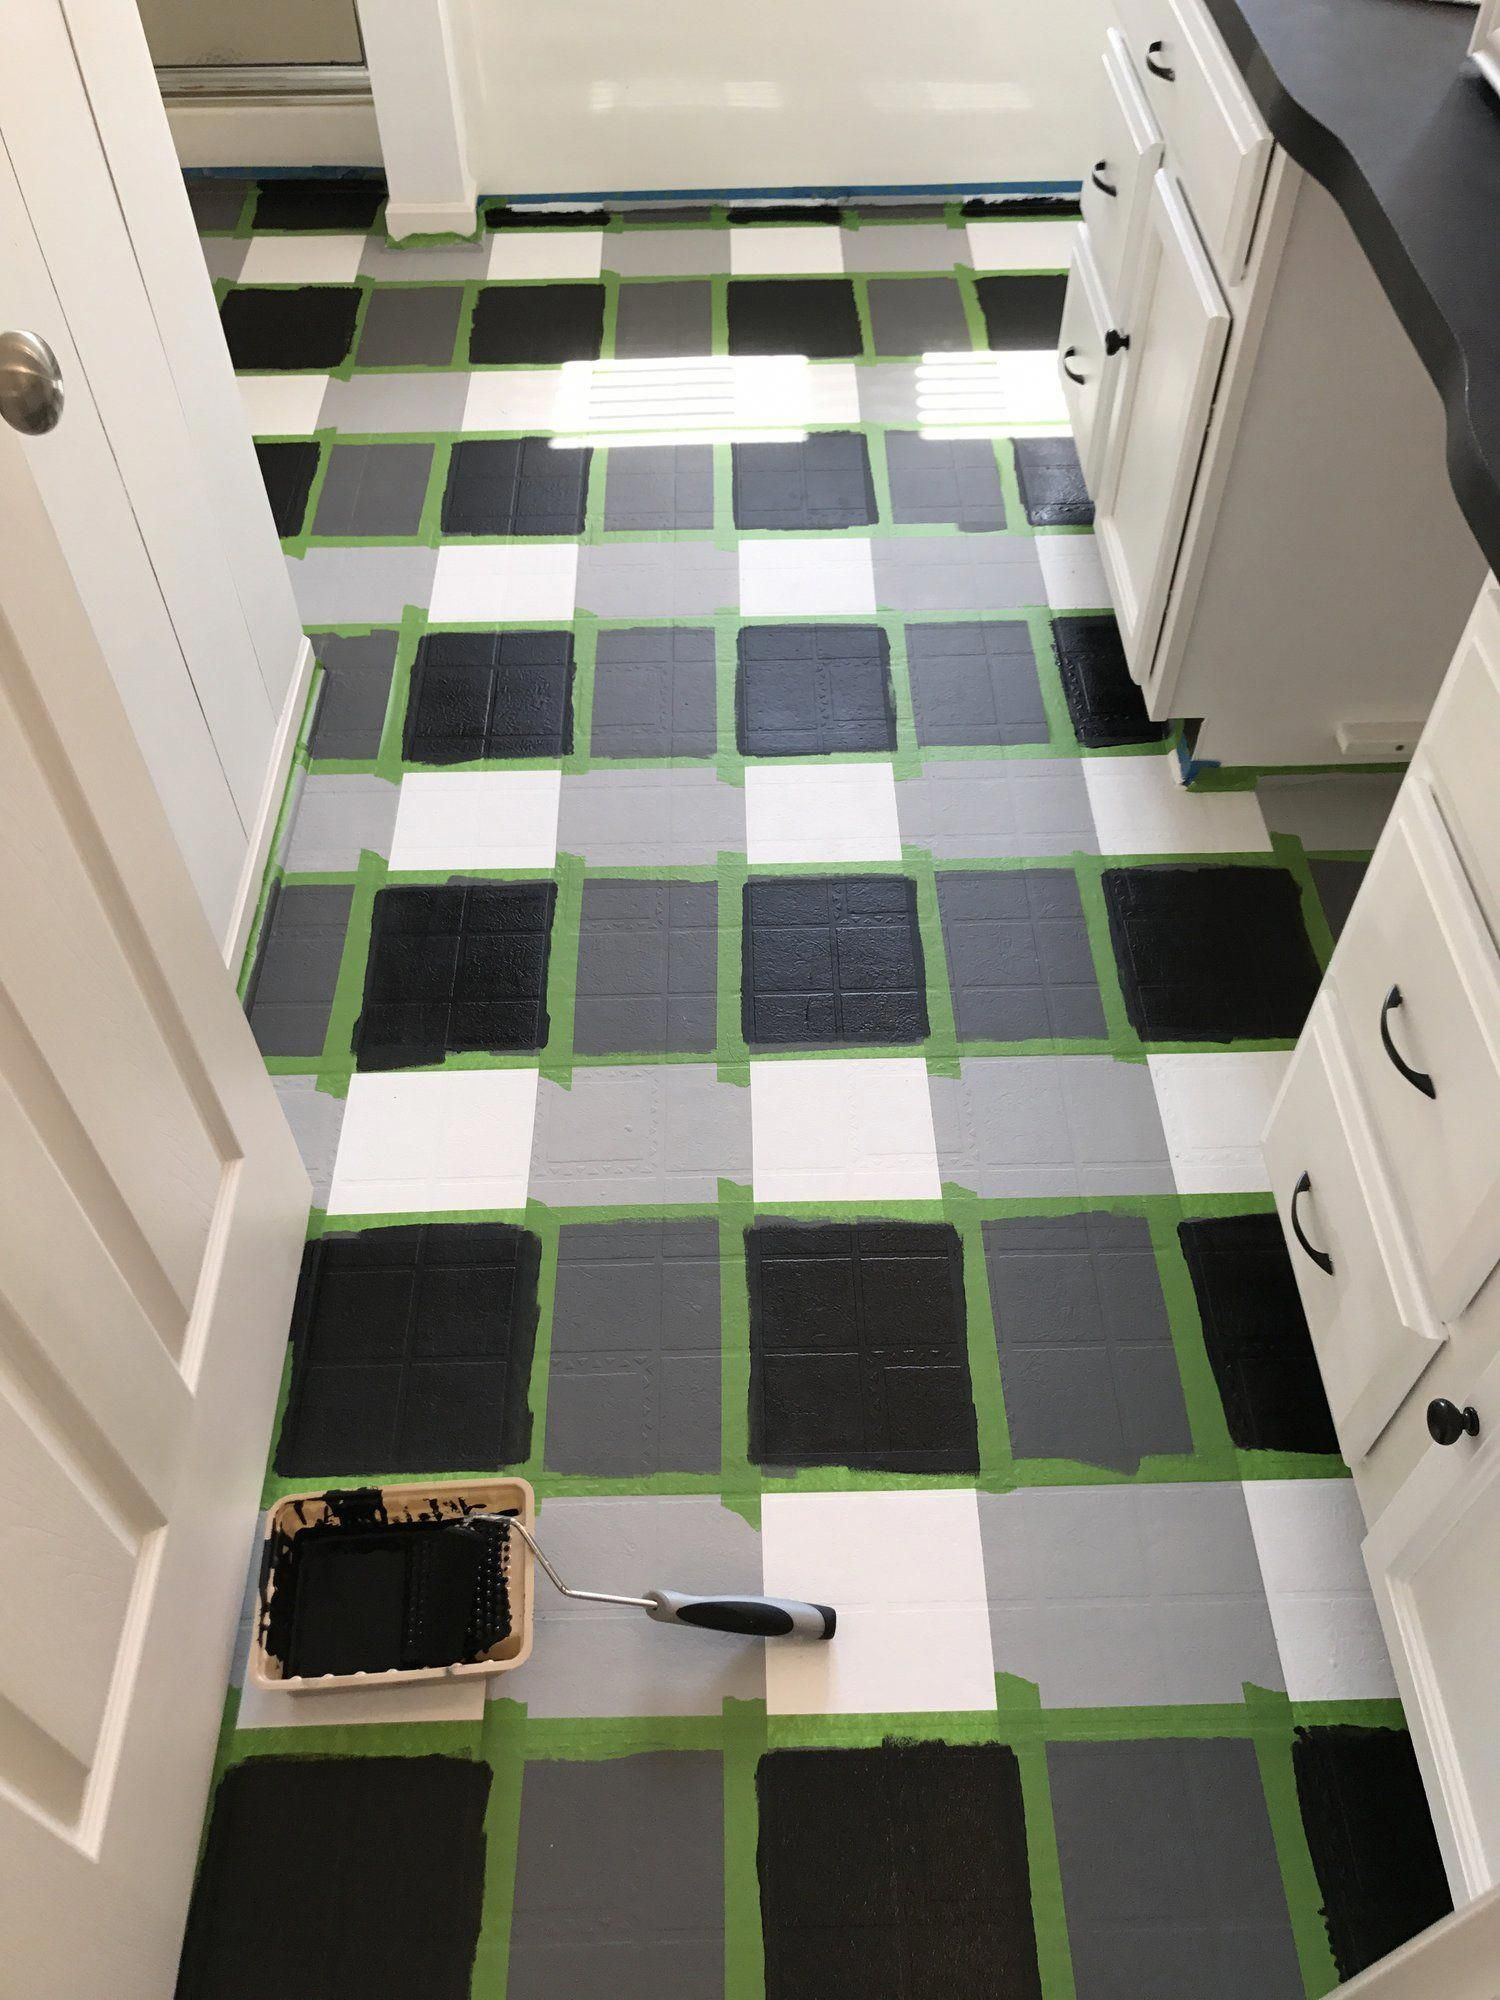 So You Re Here To Learn About My Buffalo Check Painted Floors Aren T The Amazing Sorry I J In 2020 Painted Floors Vinyl Flooring Bathroom Painting Tile Floors